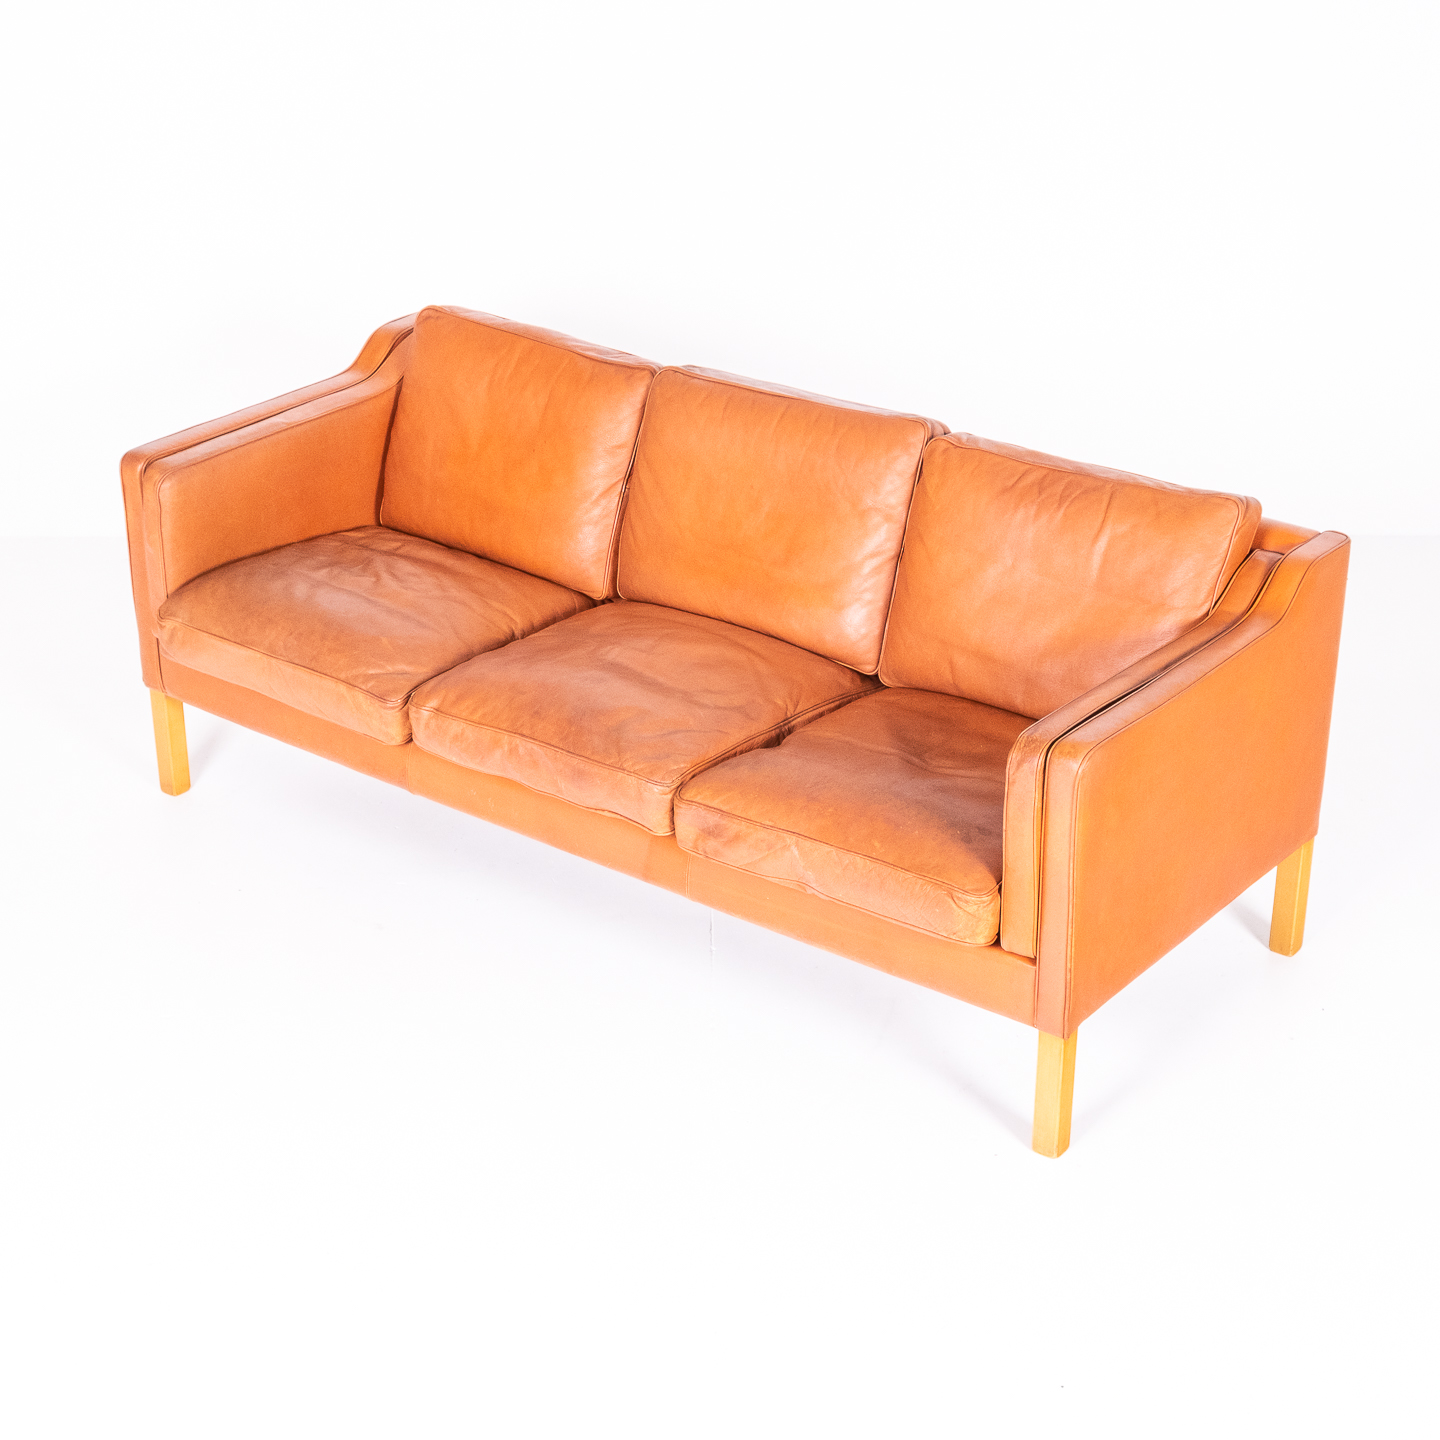 3 Seat Sofa In Tan Leather By Thams, 1960s, Denmark00003